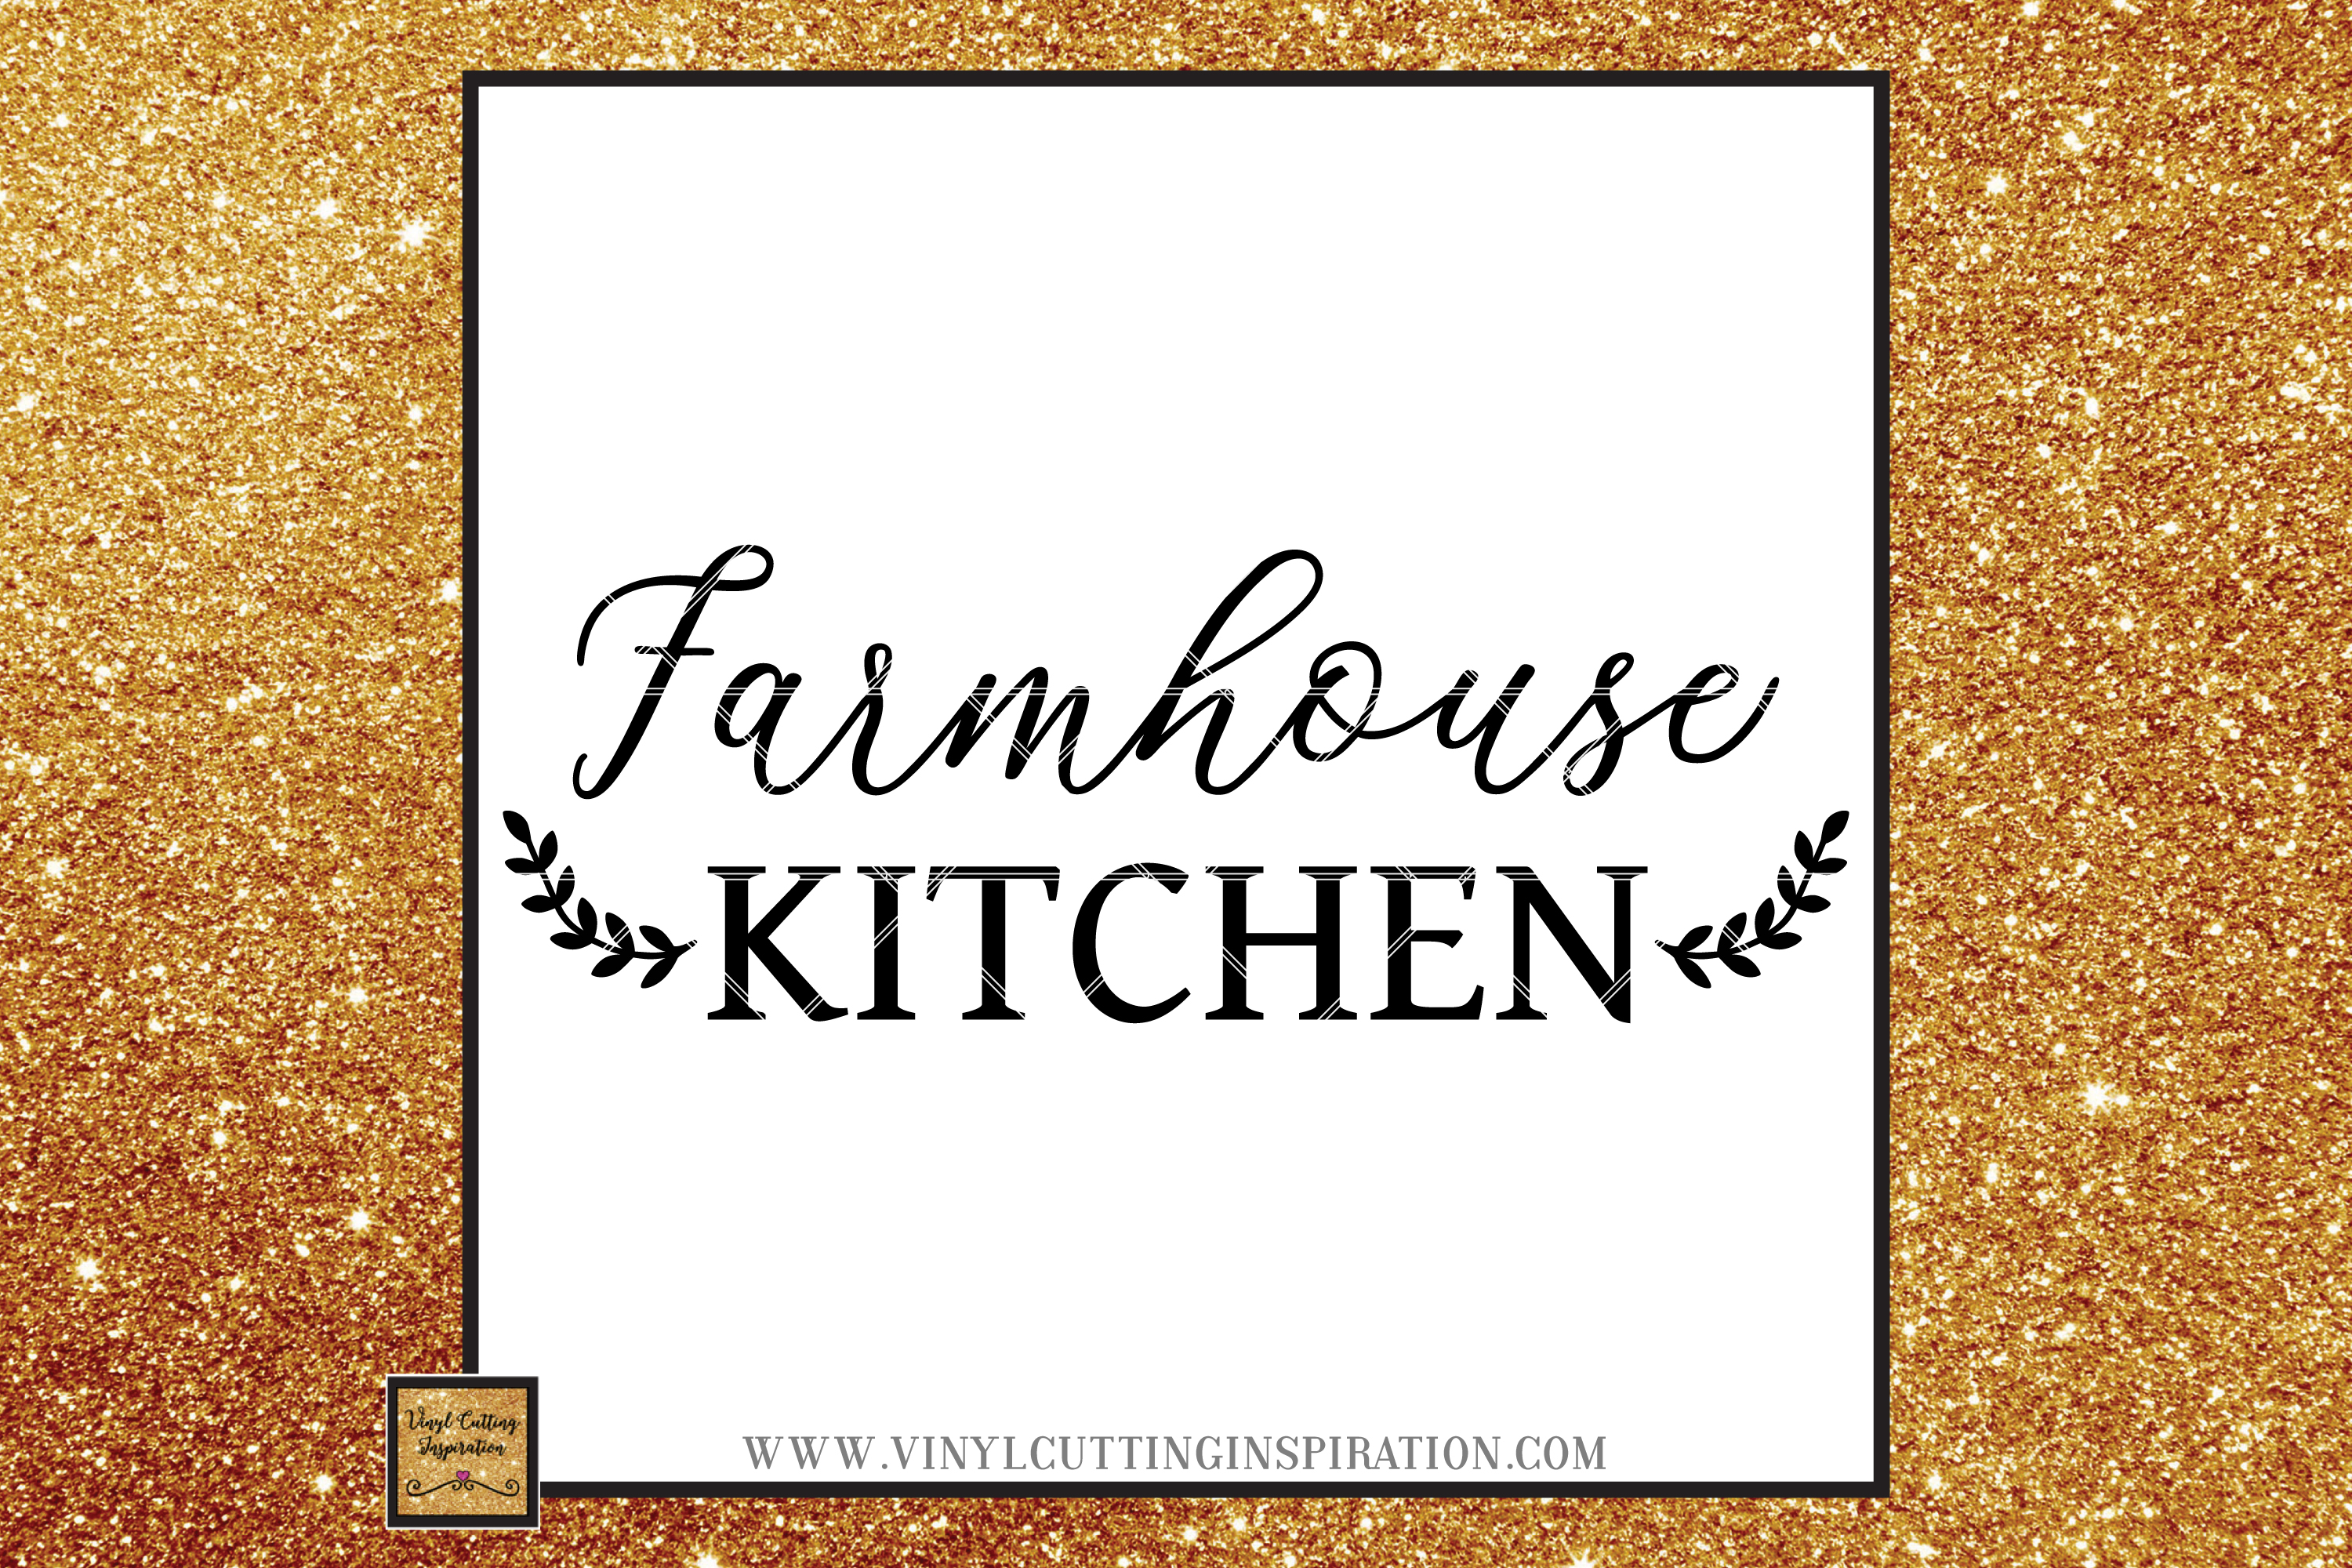 Farmhouse Kitchen Svg, Country Svg, Farmhouse Cutting files example image 1